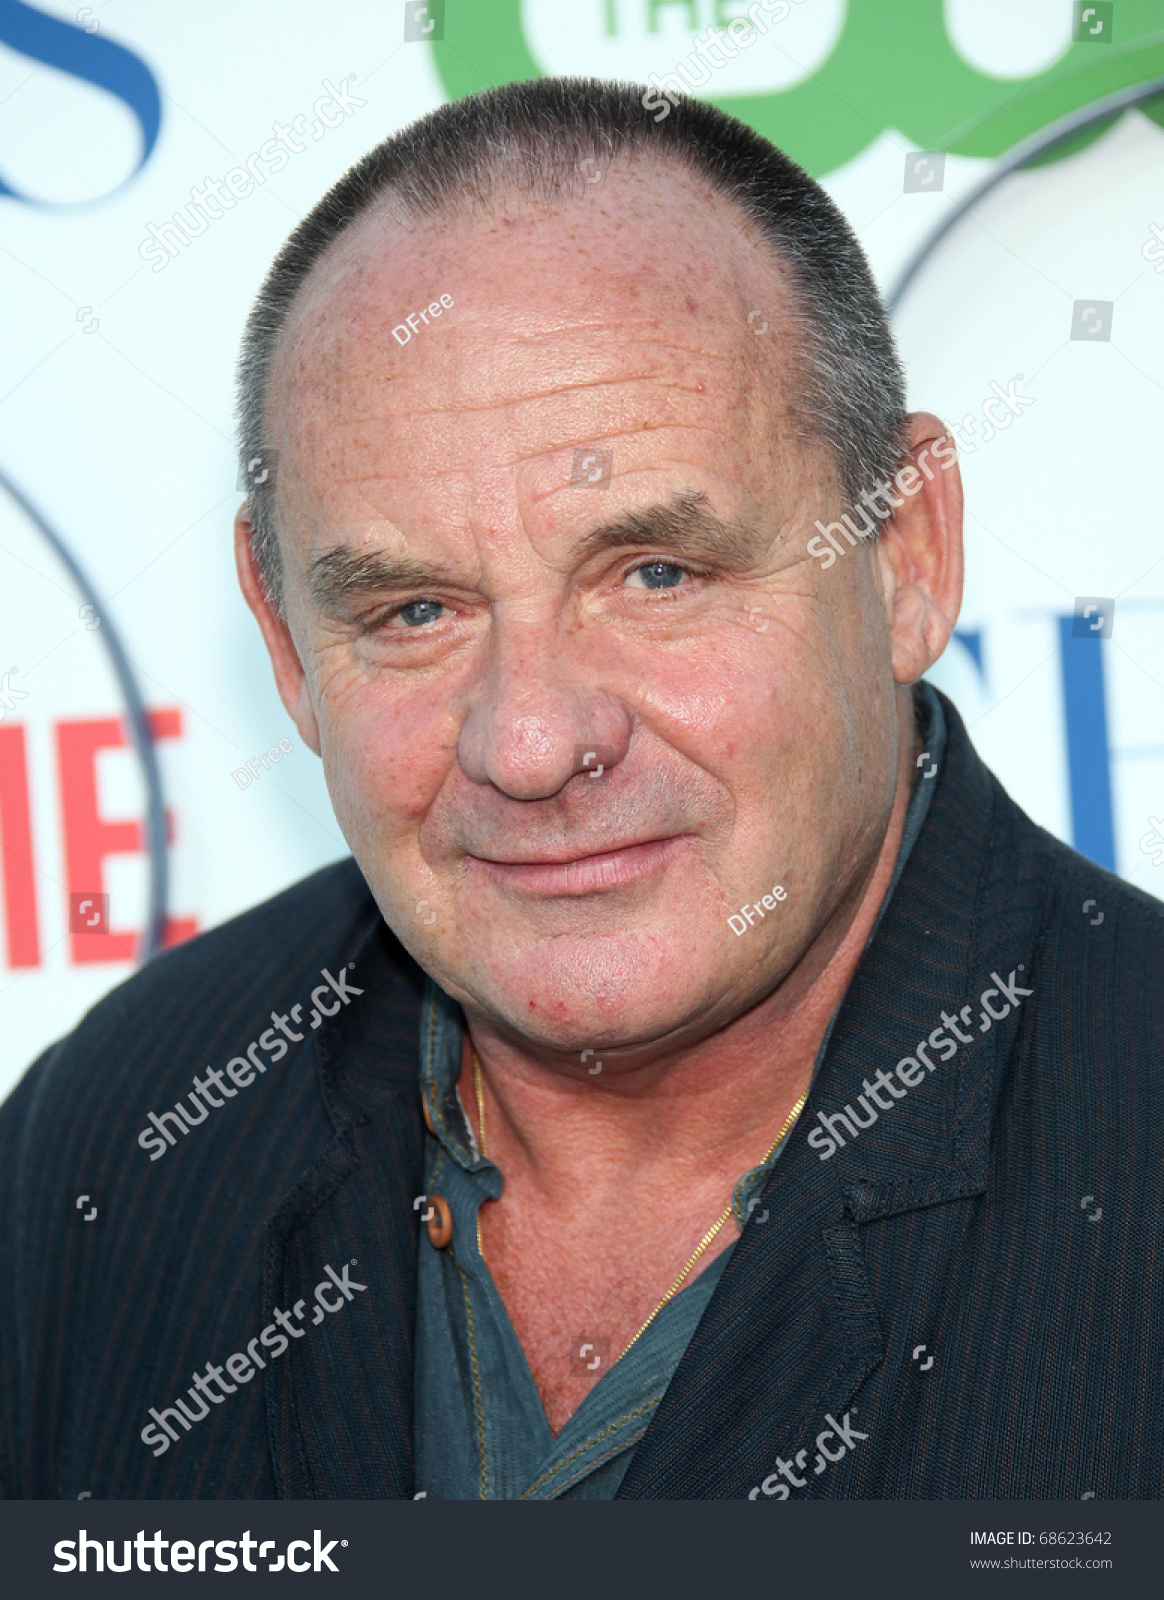 paul guilfoyle les expertspaul guilfoyle wiki, paul guilfoyle law and order, paul guilfoyle, paul guilfoyle csi, paul guilfoyle actor, paul guilfoyle la confidential, paul guilfoyle net worth, paul guilfoyle imdb, paul guilfoyle actor born in 1902, paul guilfoyle leaving csi, paul guilfoyle family, paul guilfoyle lisa giobbi, paul guilfoyle bio, paul guilfoyle spotlight, paul guilfoyle artist, paul guilfoyle les experts, paul guilfoyle news, paul guilfoyle twitter, paul guilfoyle csi las vegas, paul guilfoyle 2015